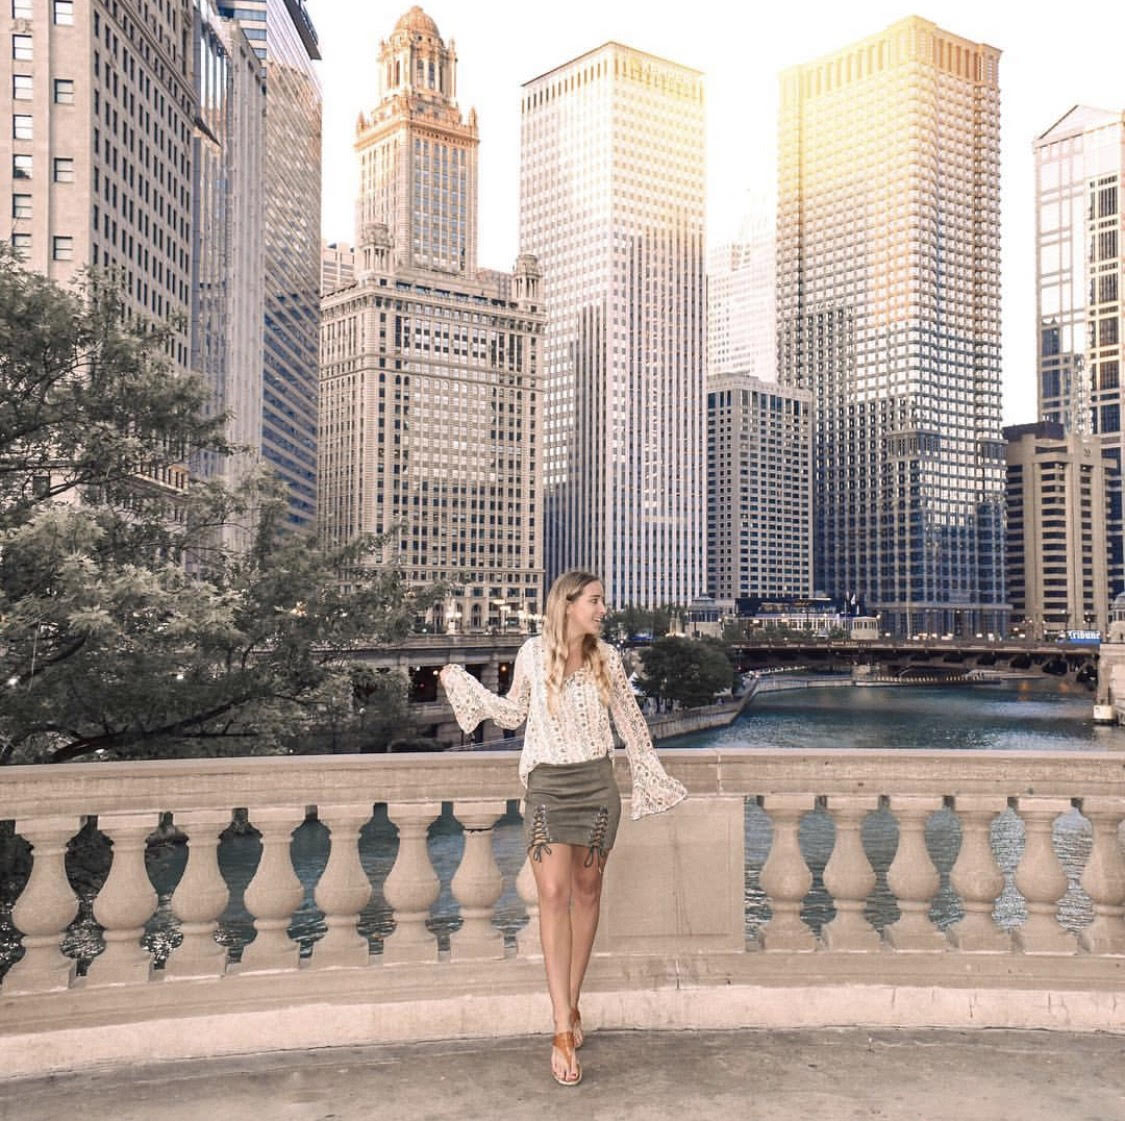 Chicago's Most Photo-Worthy Locations | All The Spots You Don't Want to Miss